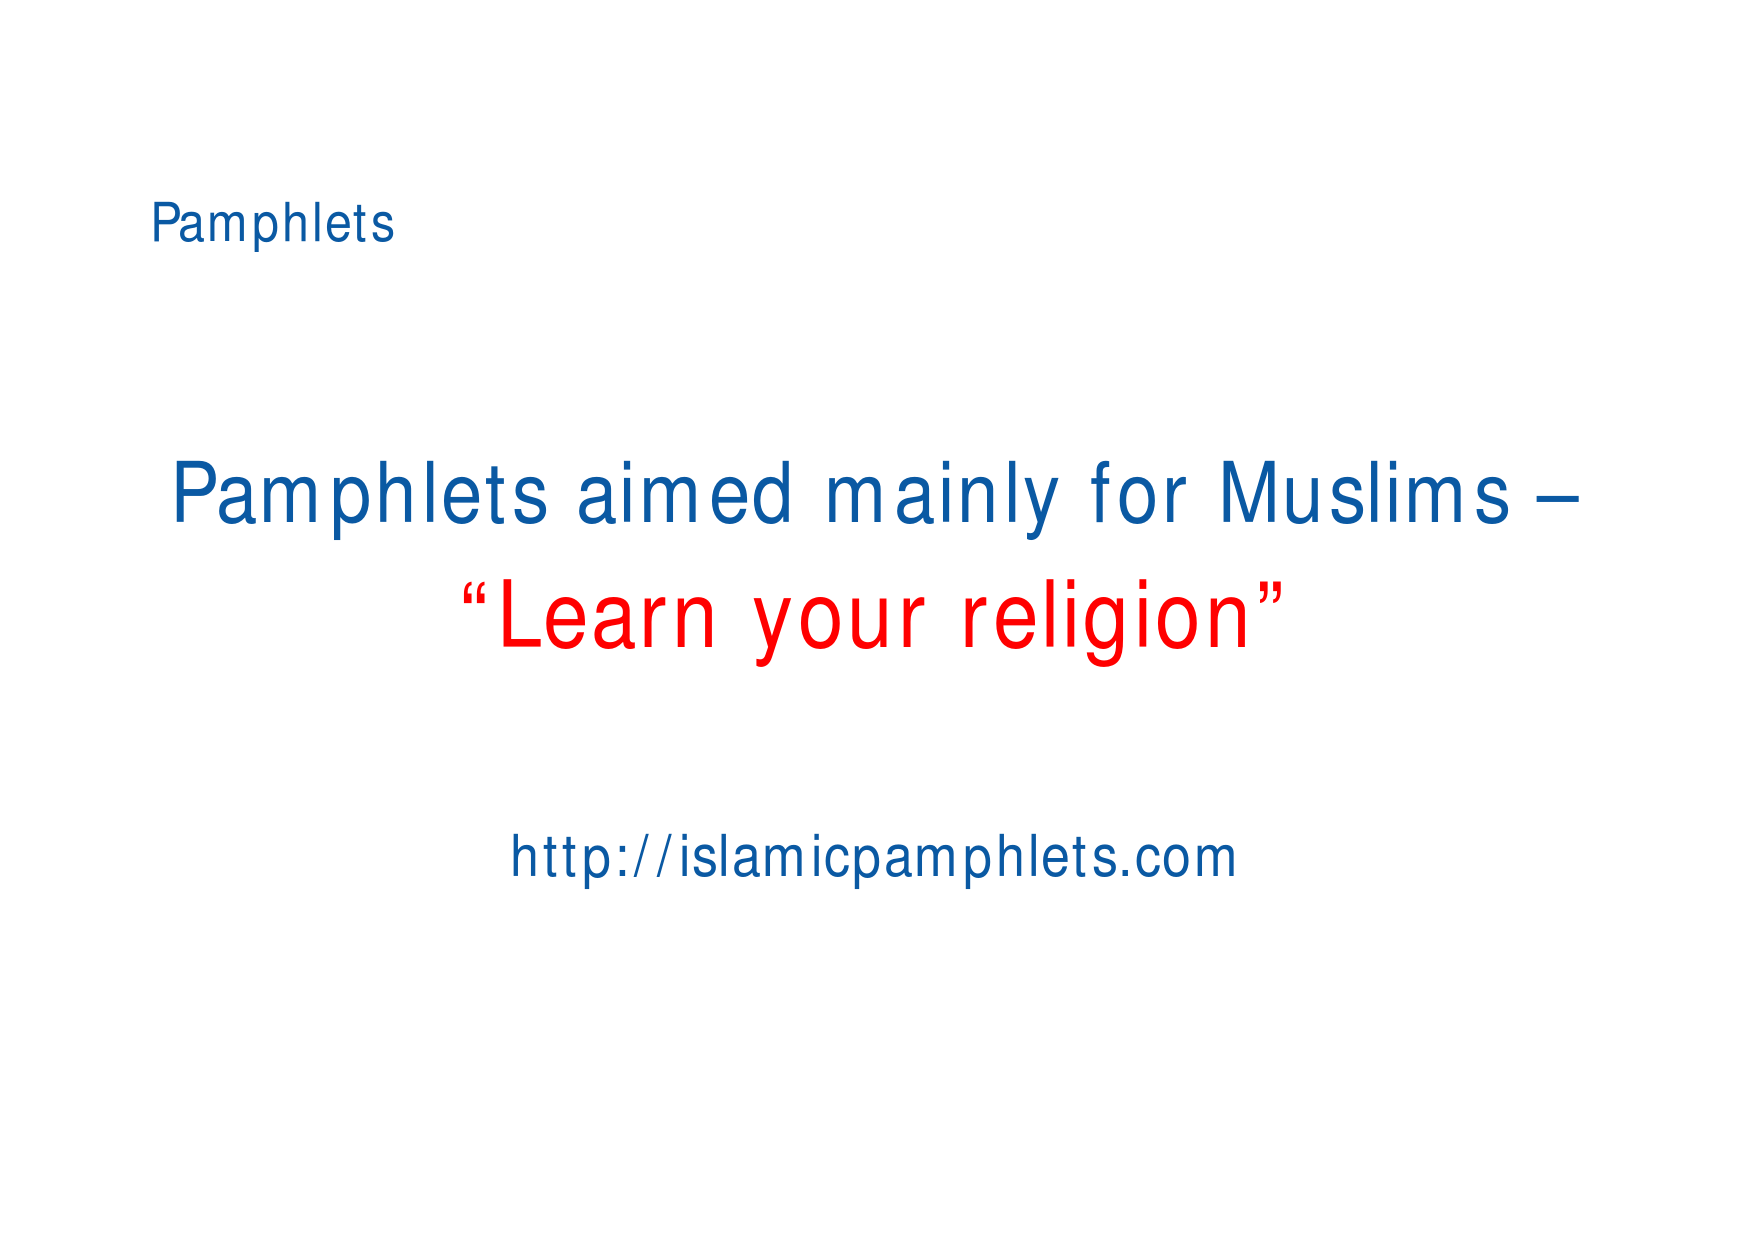 Pamphlets aimed mainly for Muslims – Learn your religion